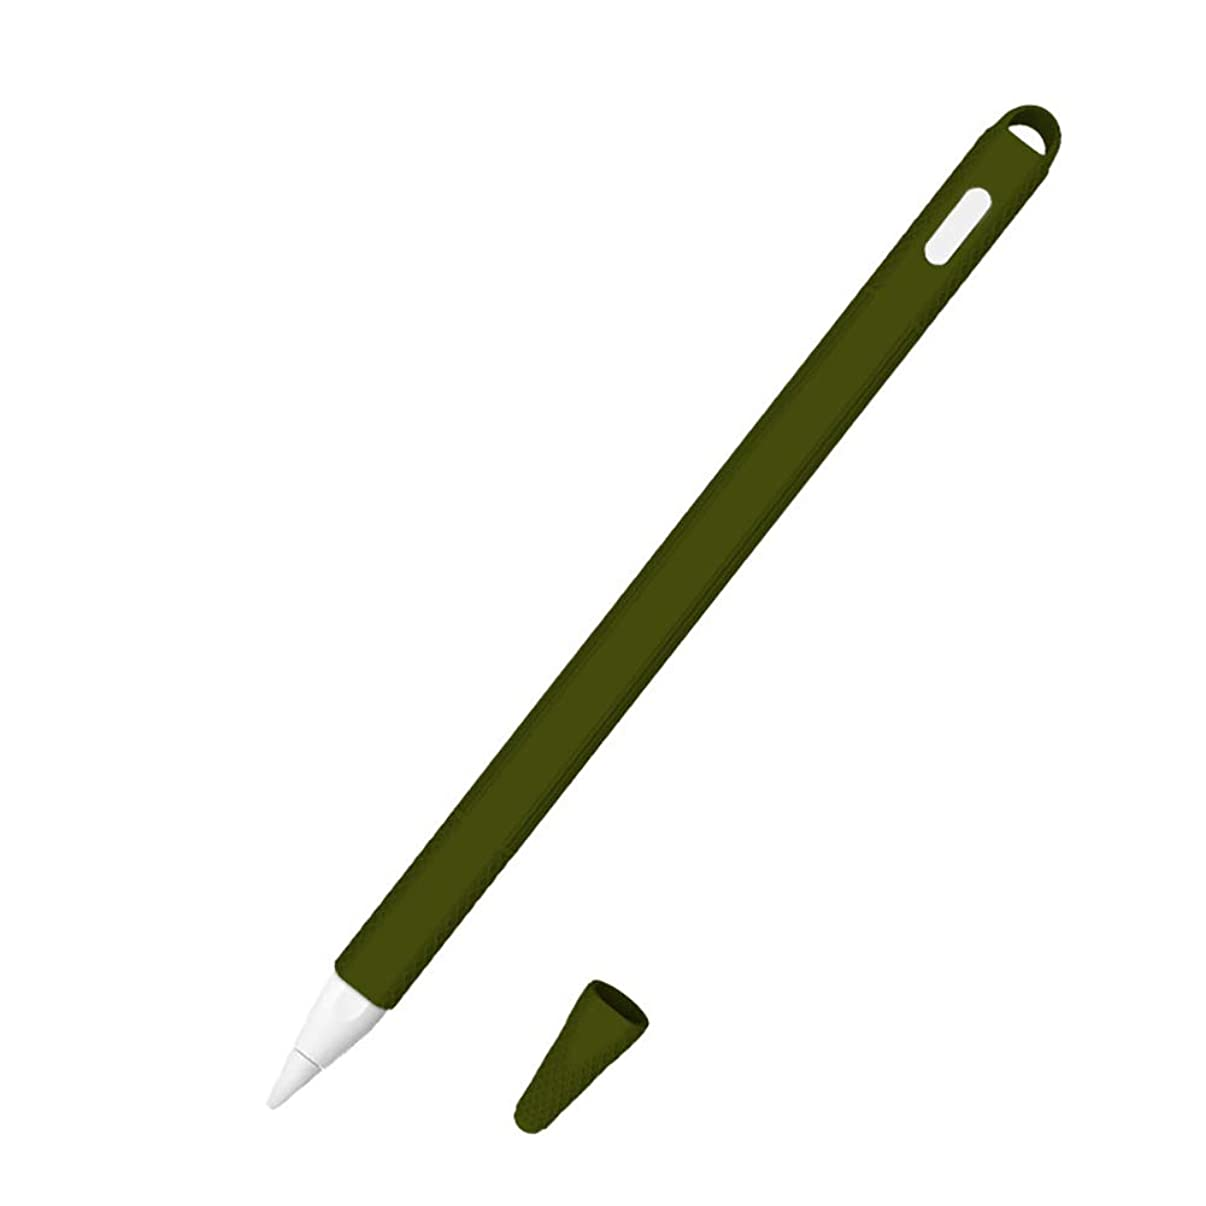 Gyswshh Anti-Slip Silicone Stylus Protective Case Cover Skin for iPad Apple Pencil 2 Gen Army Green